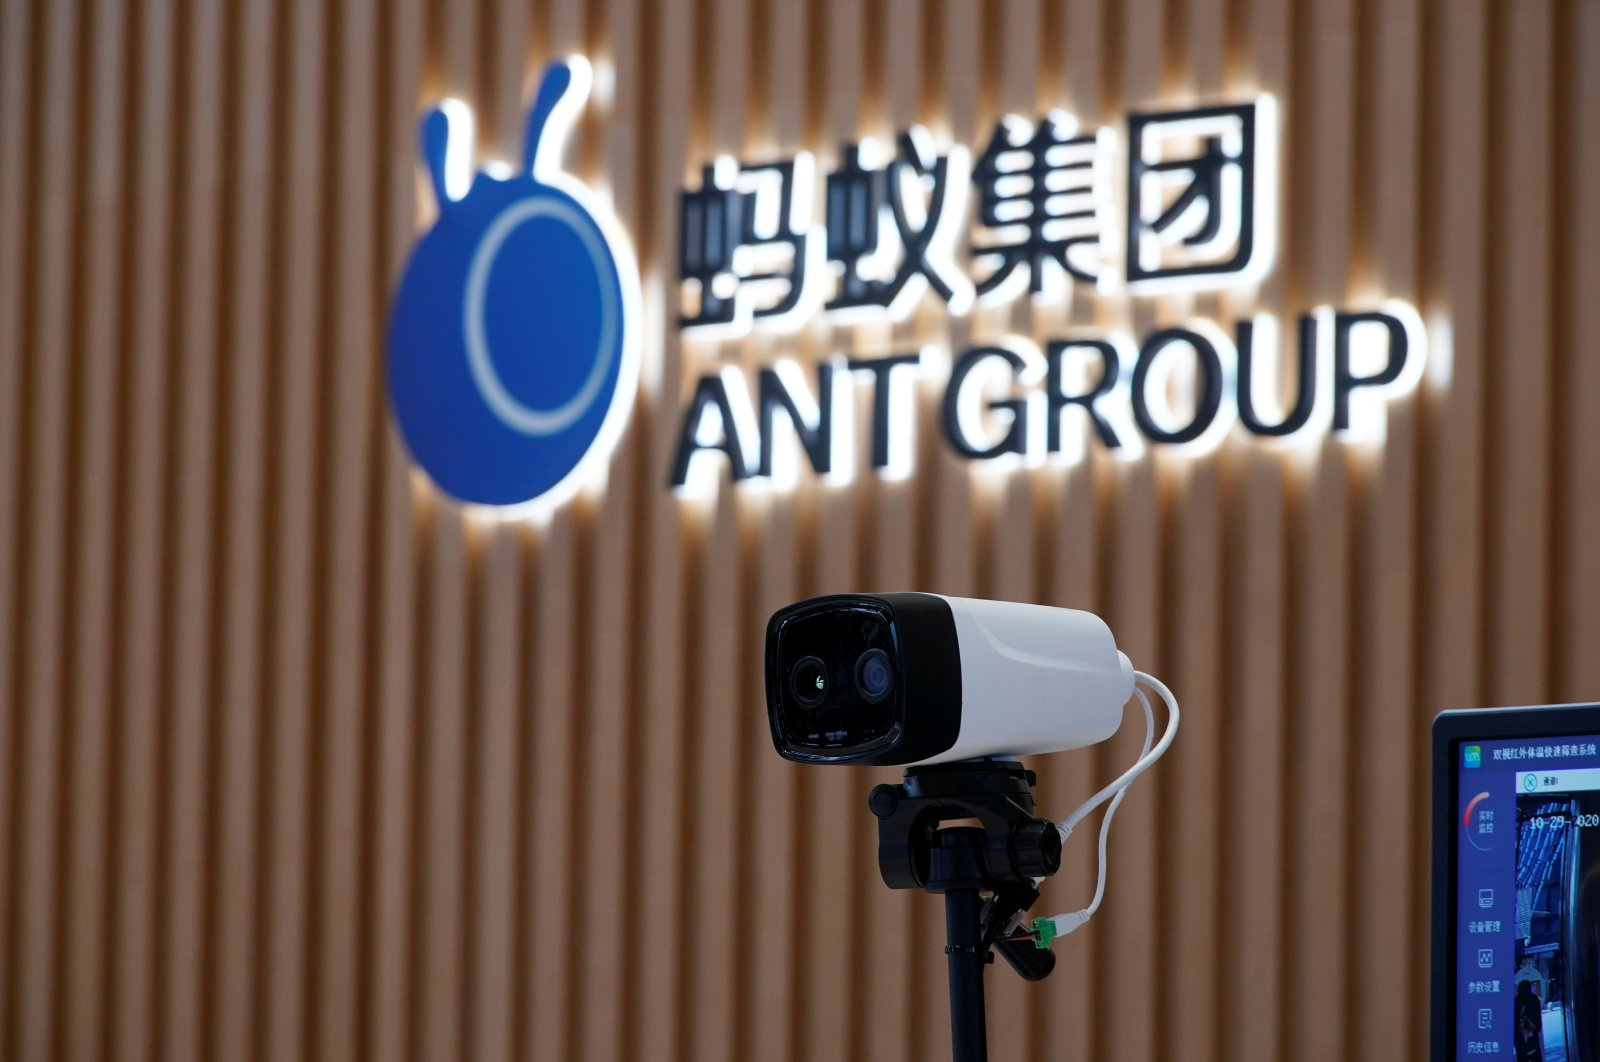 A thermal imaging camera stands in front of the Ant Group logo at its headquarters in Hangzhou, Zhejiang province, China, on Oct. 29, 2020. (Reuters Photo)